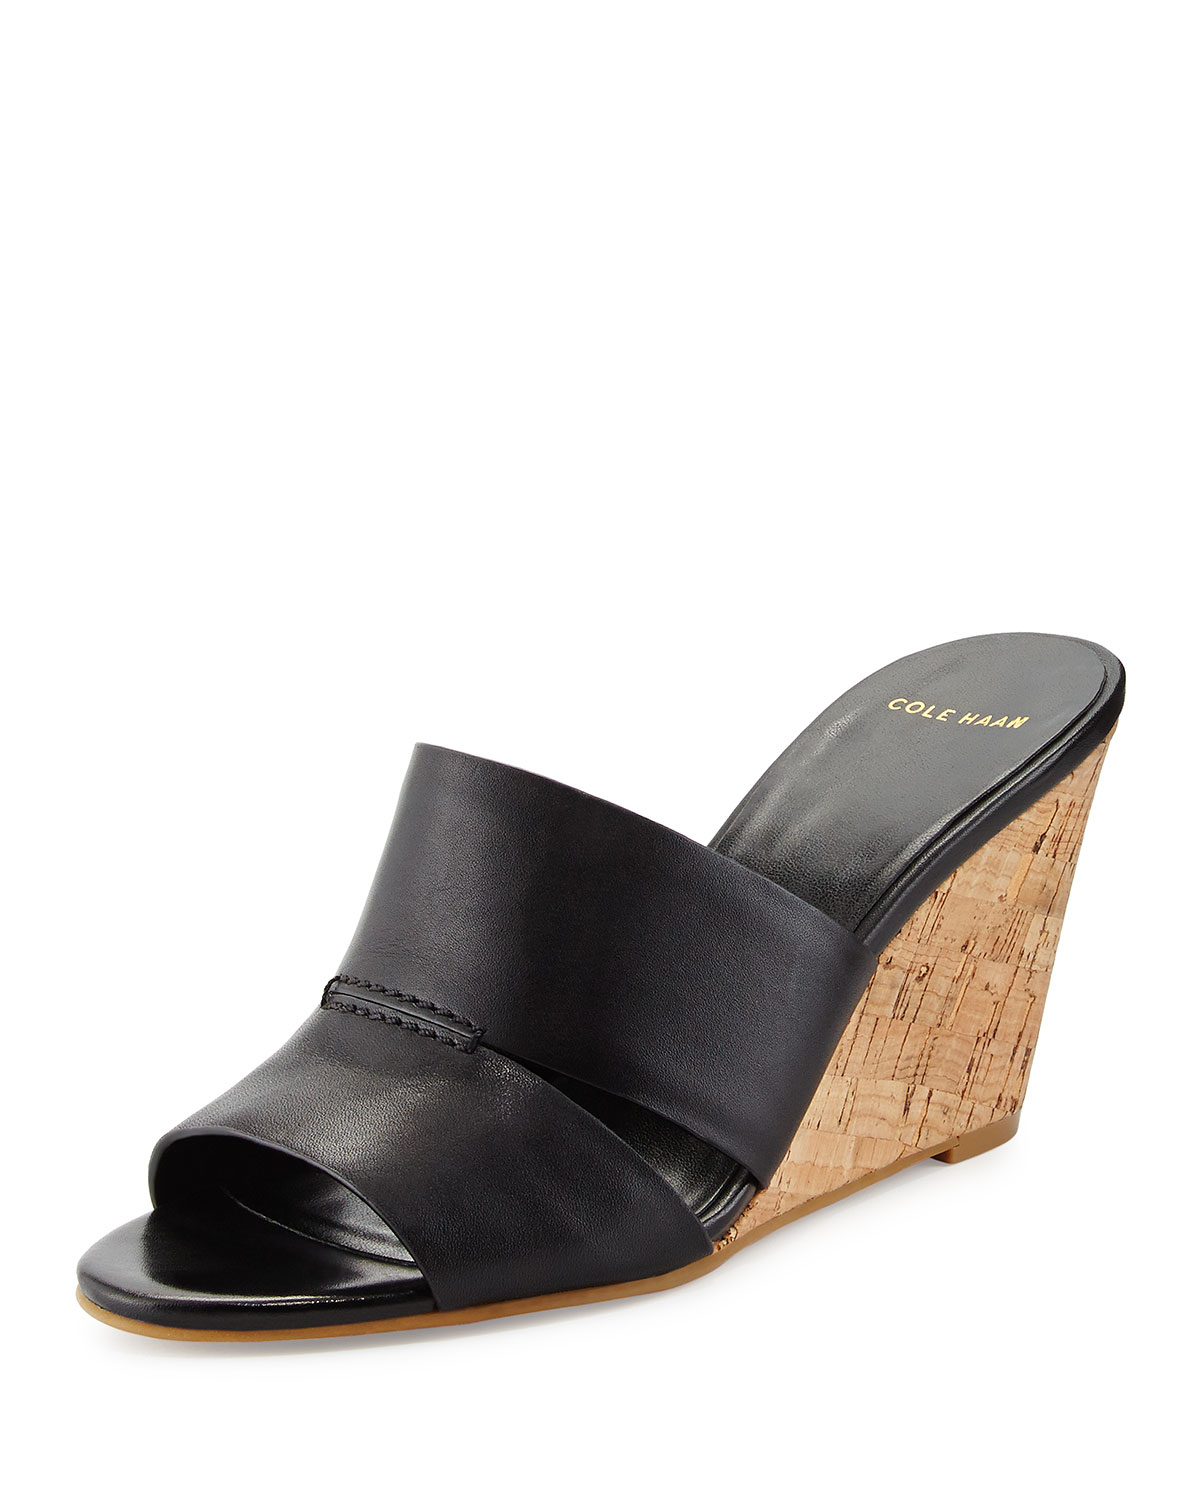 Details about FOSSIL Women's Slip On Wedge Heel Black Leather Sandals Size FOSSIL Women's Slip On Wedge Heel Black Leather Sandals Size | Add to watch list. Find out more about the Top-Rated Seller program - opens in a new window or tab. regaliathreads. % Positive feedback.